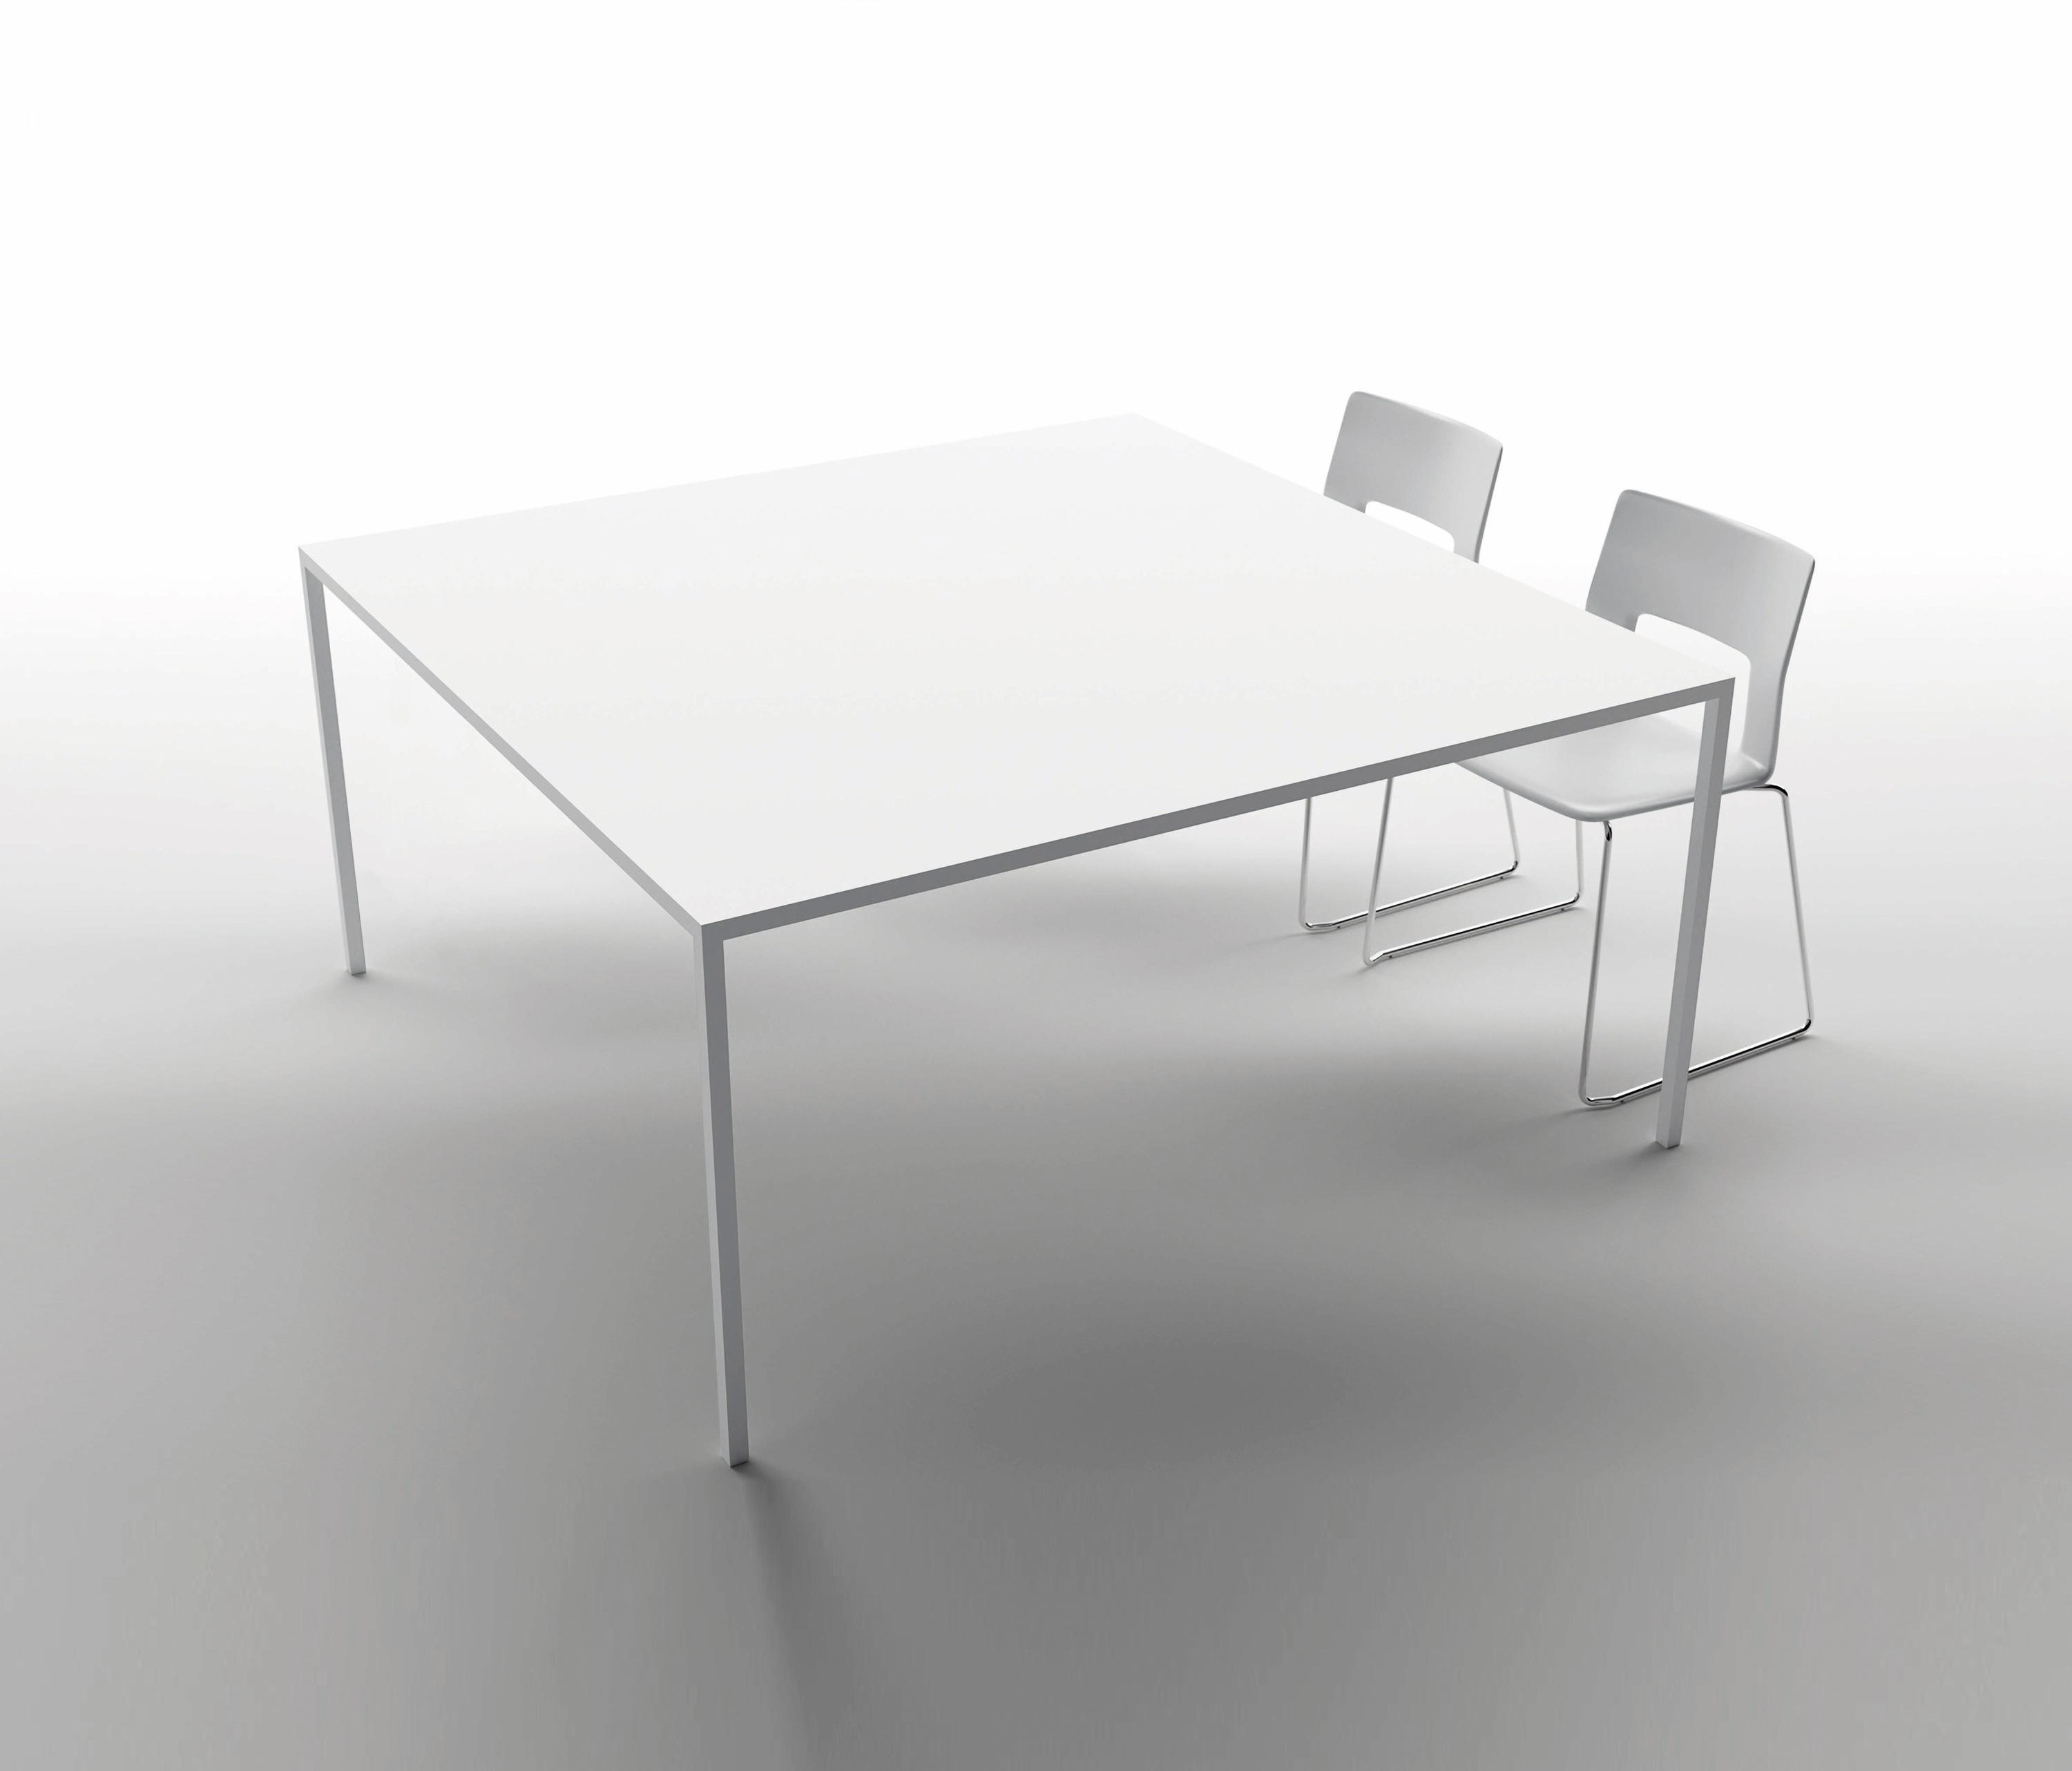 25 square table meeting room tables from desalto architonic - Tavolo desalto 25 prezzo ...